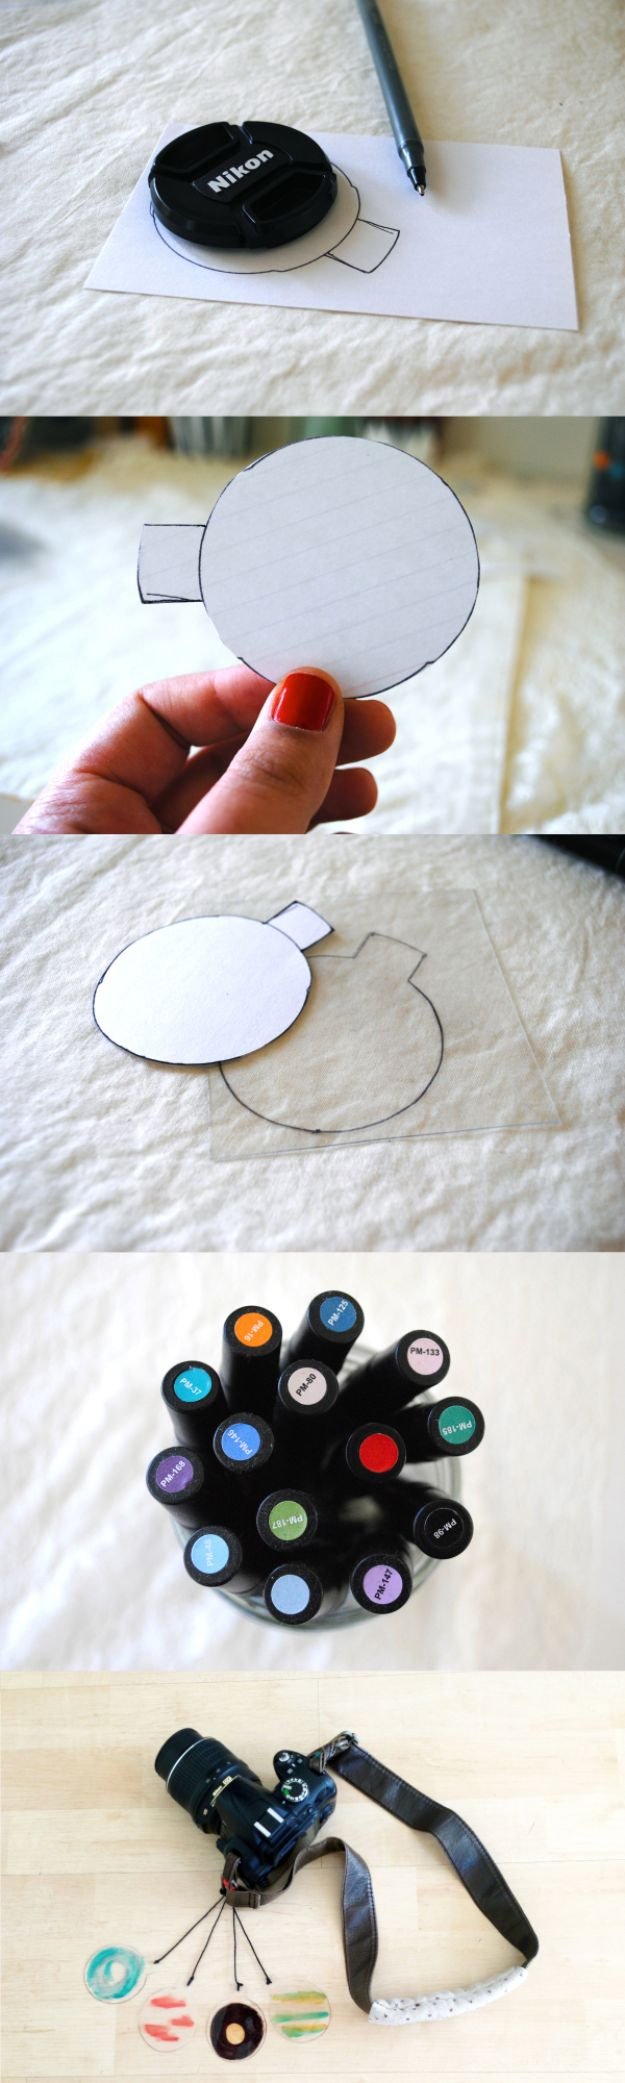 DIY Photography Hacks - Colored Lens Filter DIY - Easy Ways to Make Photo Equipment and Props | Photo and Lighting, Backdrops | Projects for Shooting Best Photos